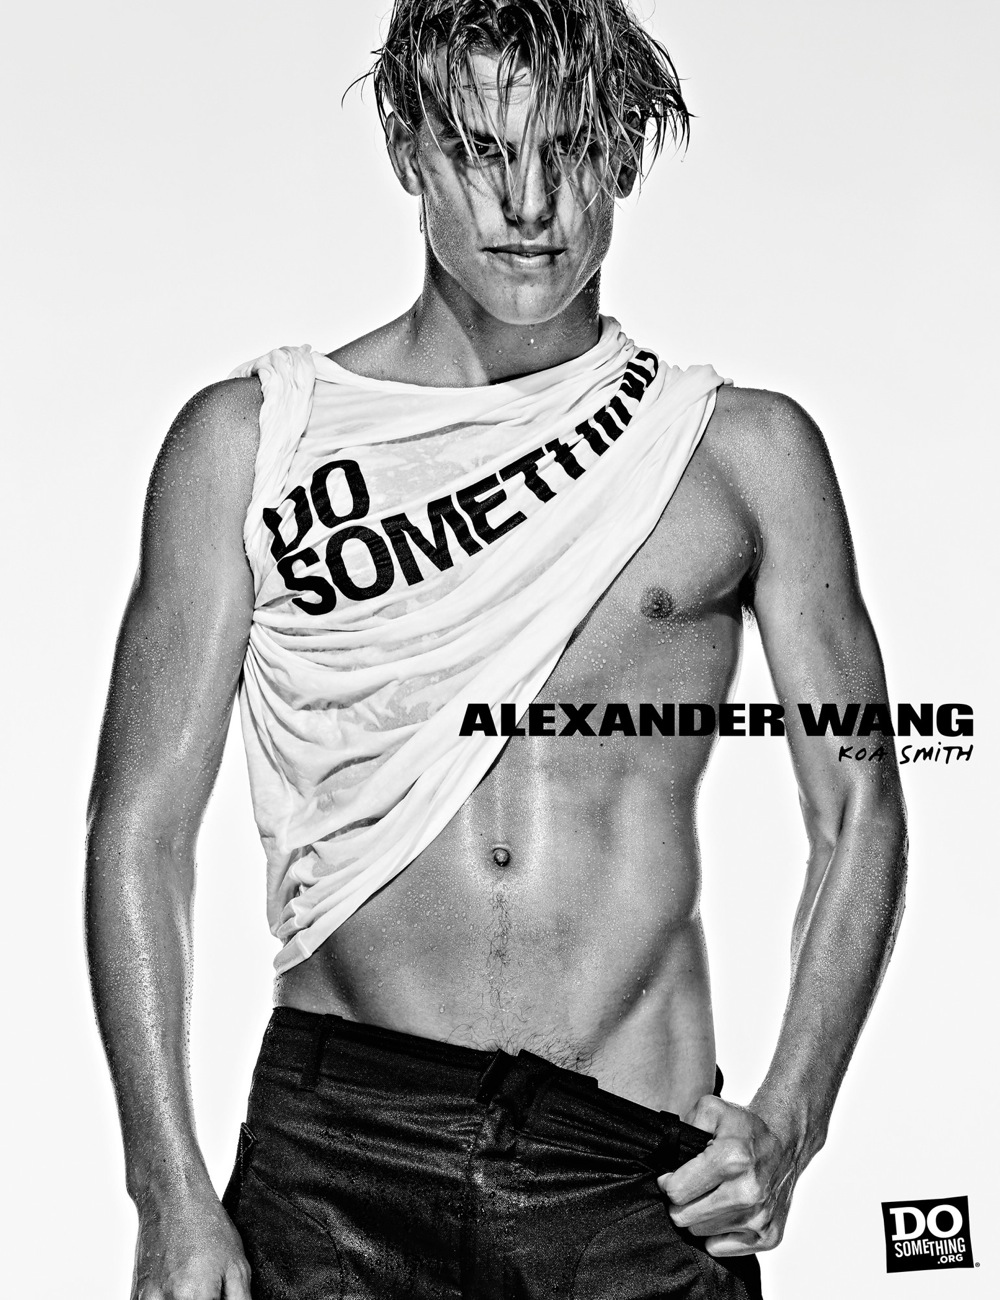 Koa Smith wears Alexander Wang x DoSomething